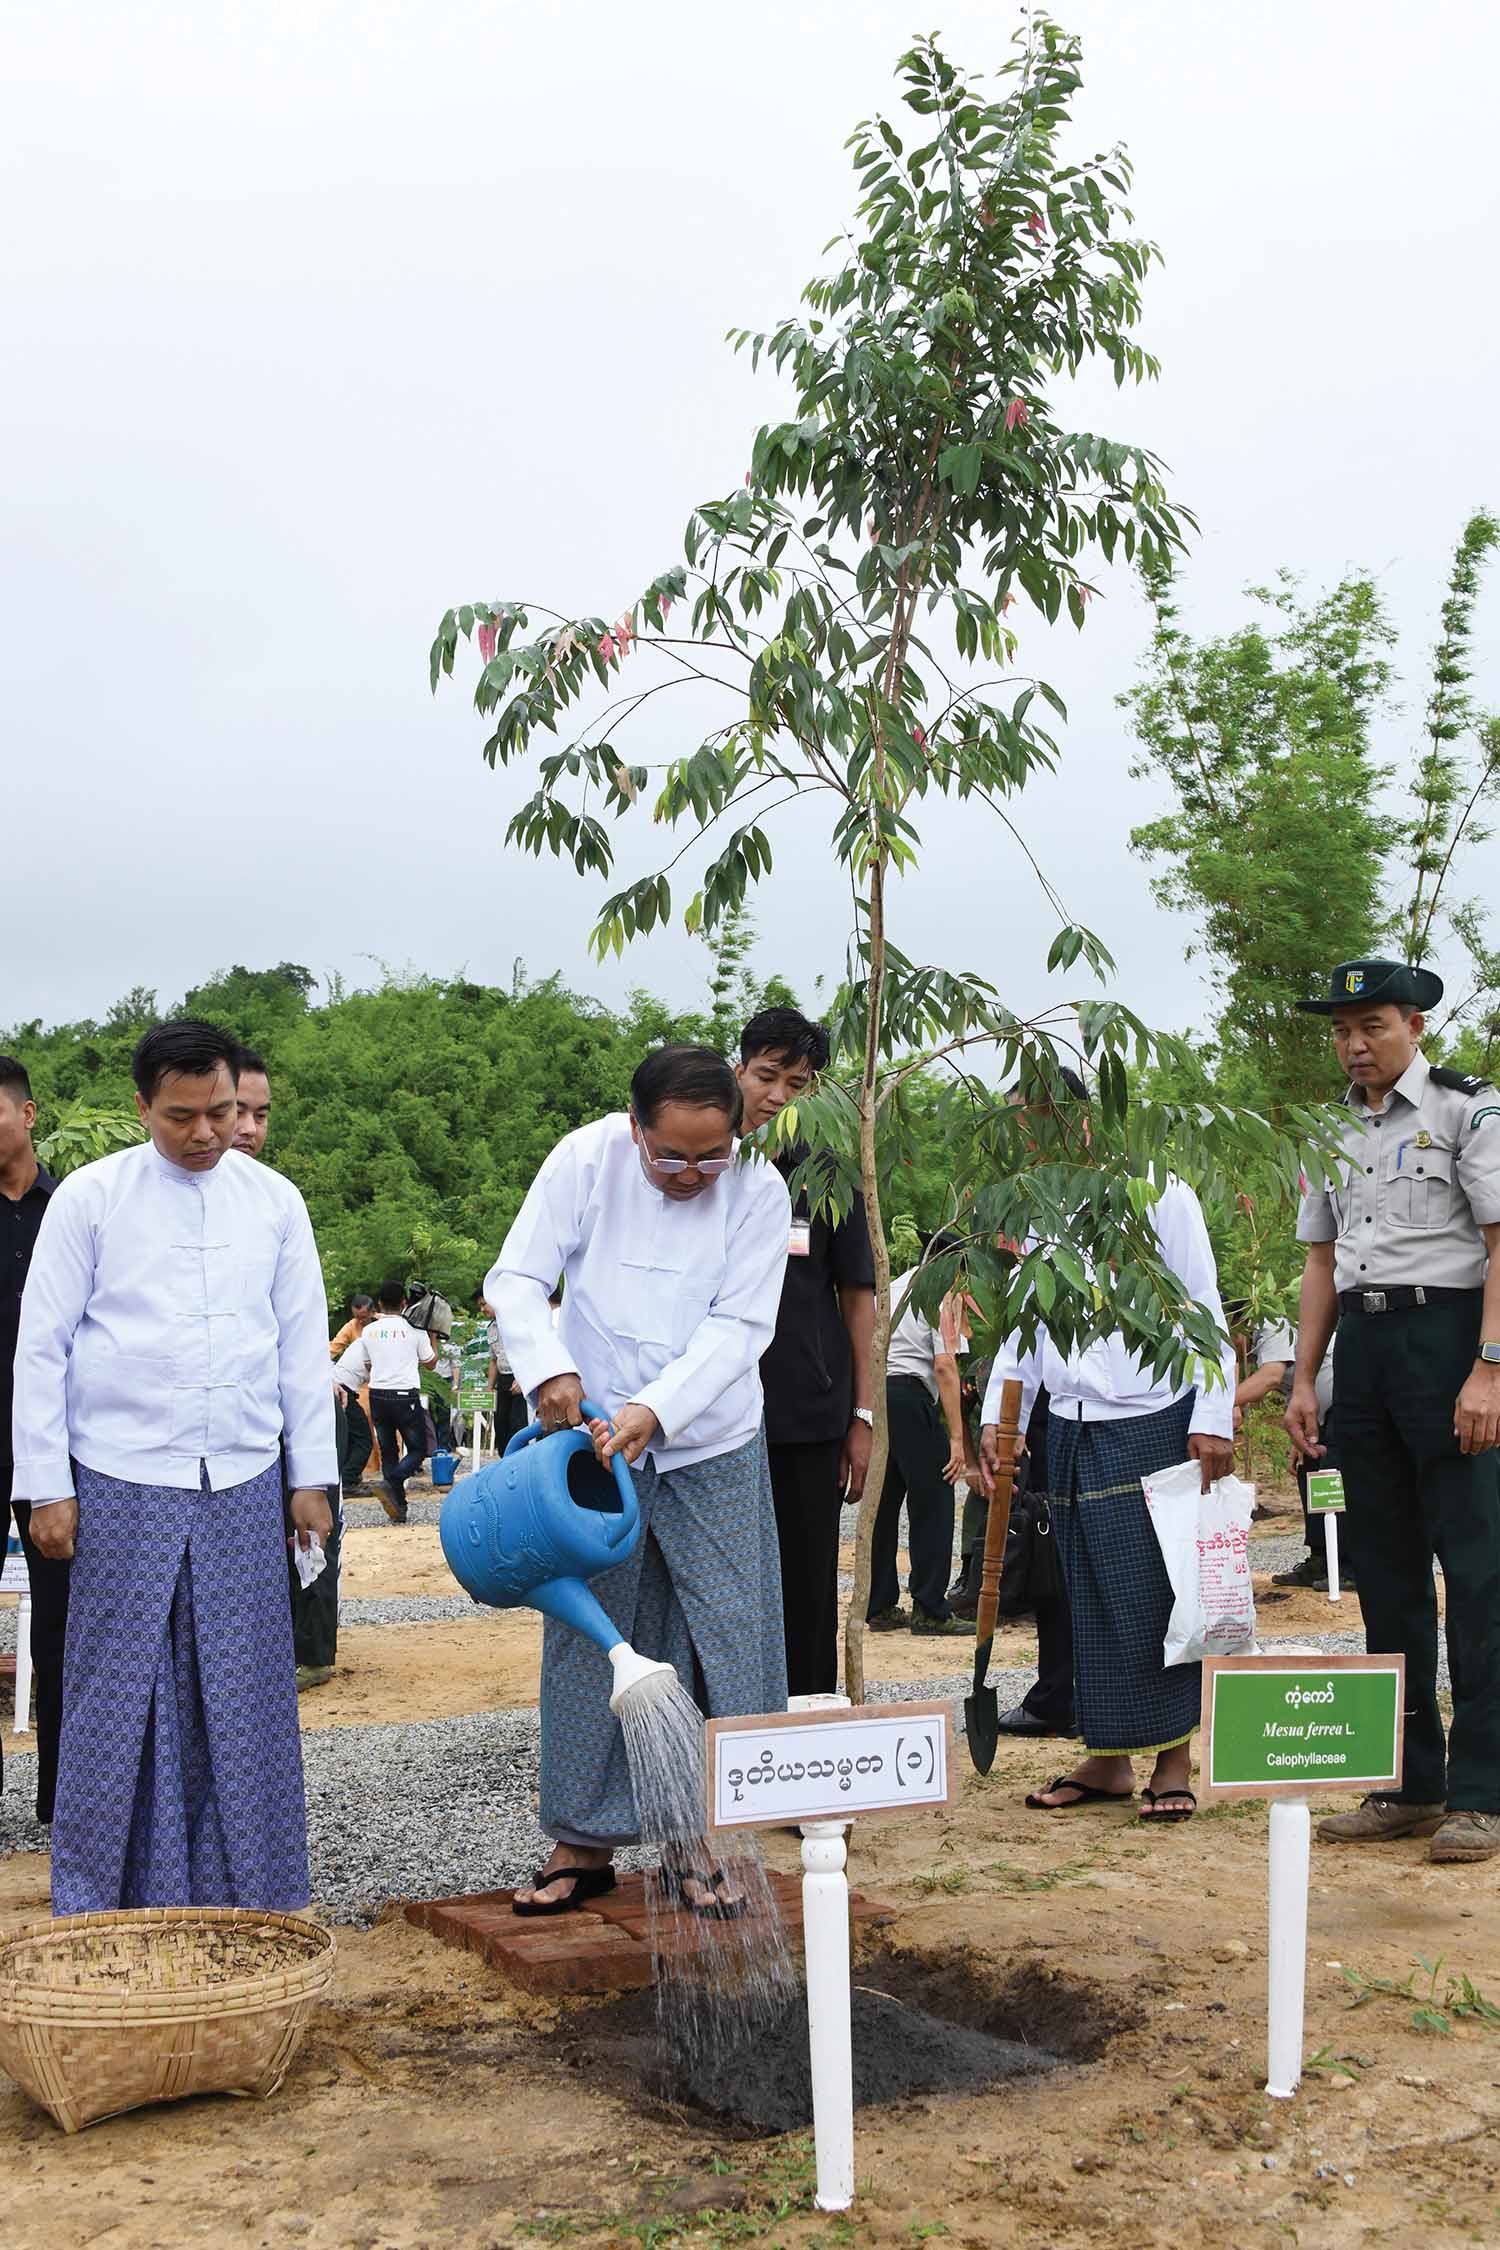 Vice President U Myint Swe plants a gangaw (Calophyllaceae) tree at the monsoon planting event for 2019 in Nay Pyi Taw.  Photo: MNA